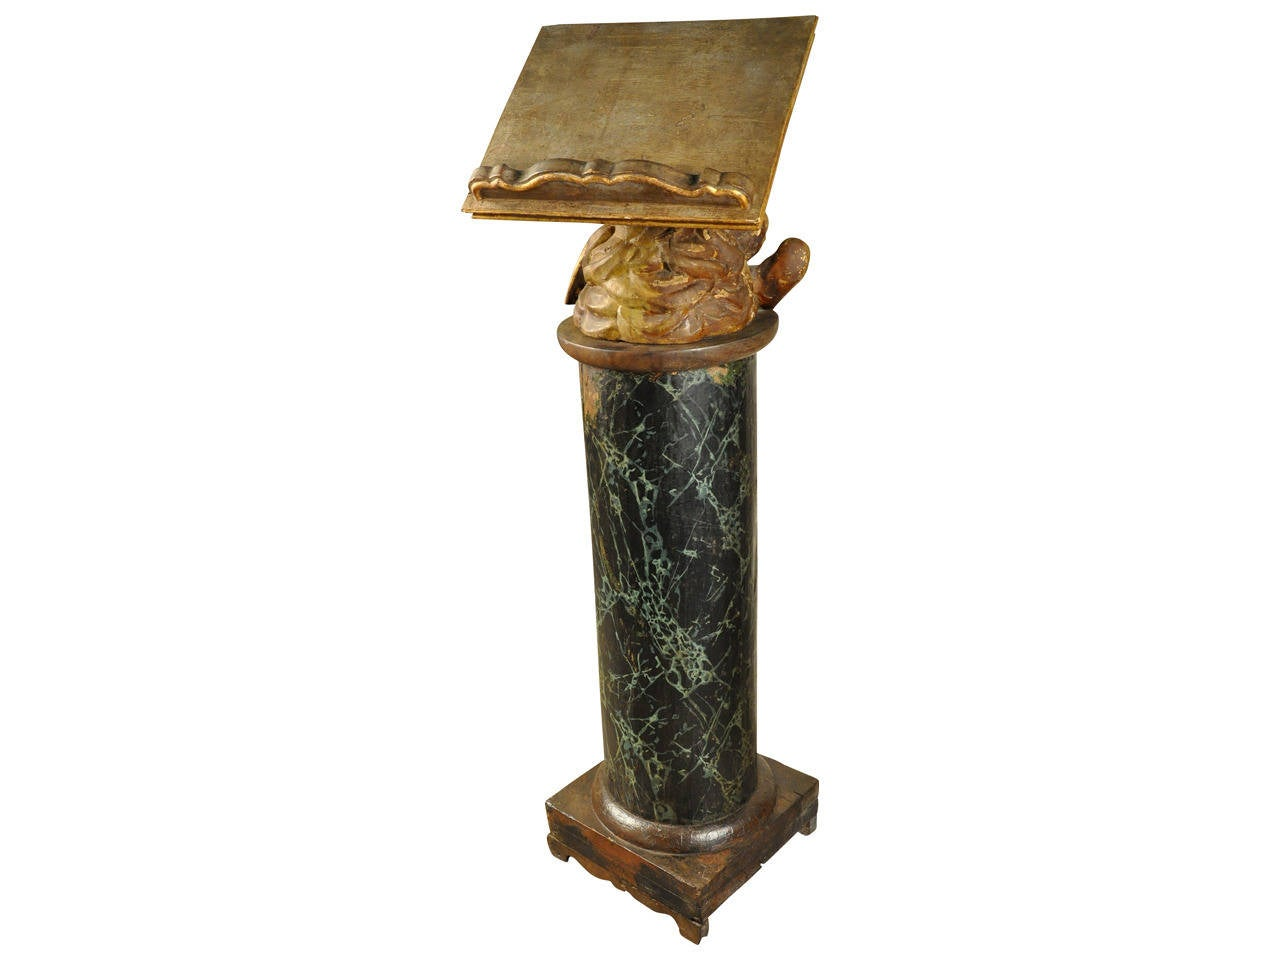 A stunning and exceptional 17th century ecclesiastical lectern from the north of Italy. The solid wood column has a polychromed faux marble finish as verde antico marble. The putti support of the book rest is in giltwood and rotates. The book rest